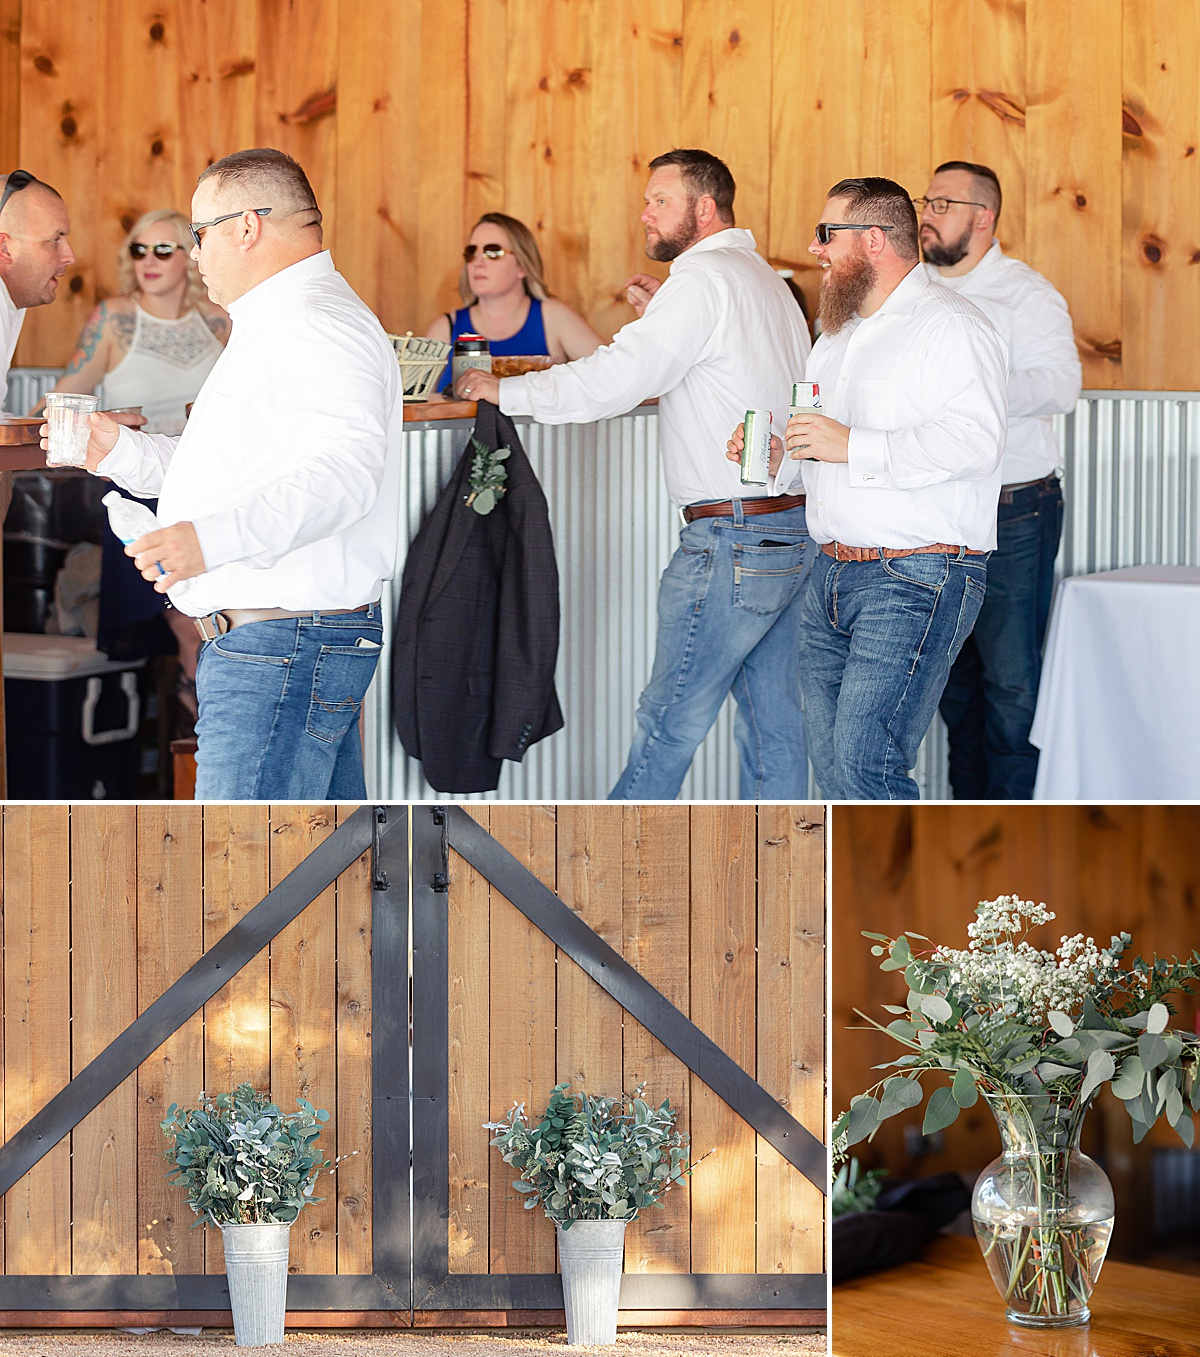 Rustic-Texas-Wedding-Hollow-Creek-Ranch-Carly-Barton-Photography_0153.jpg